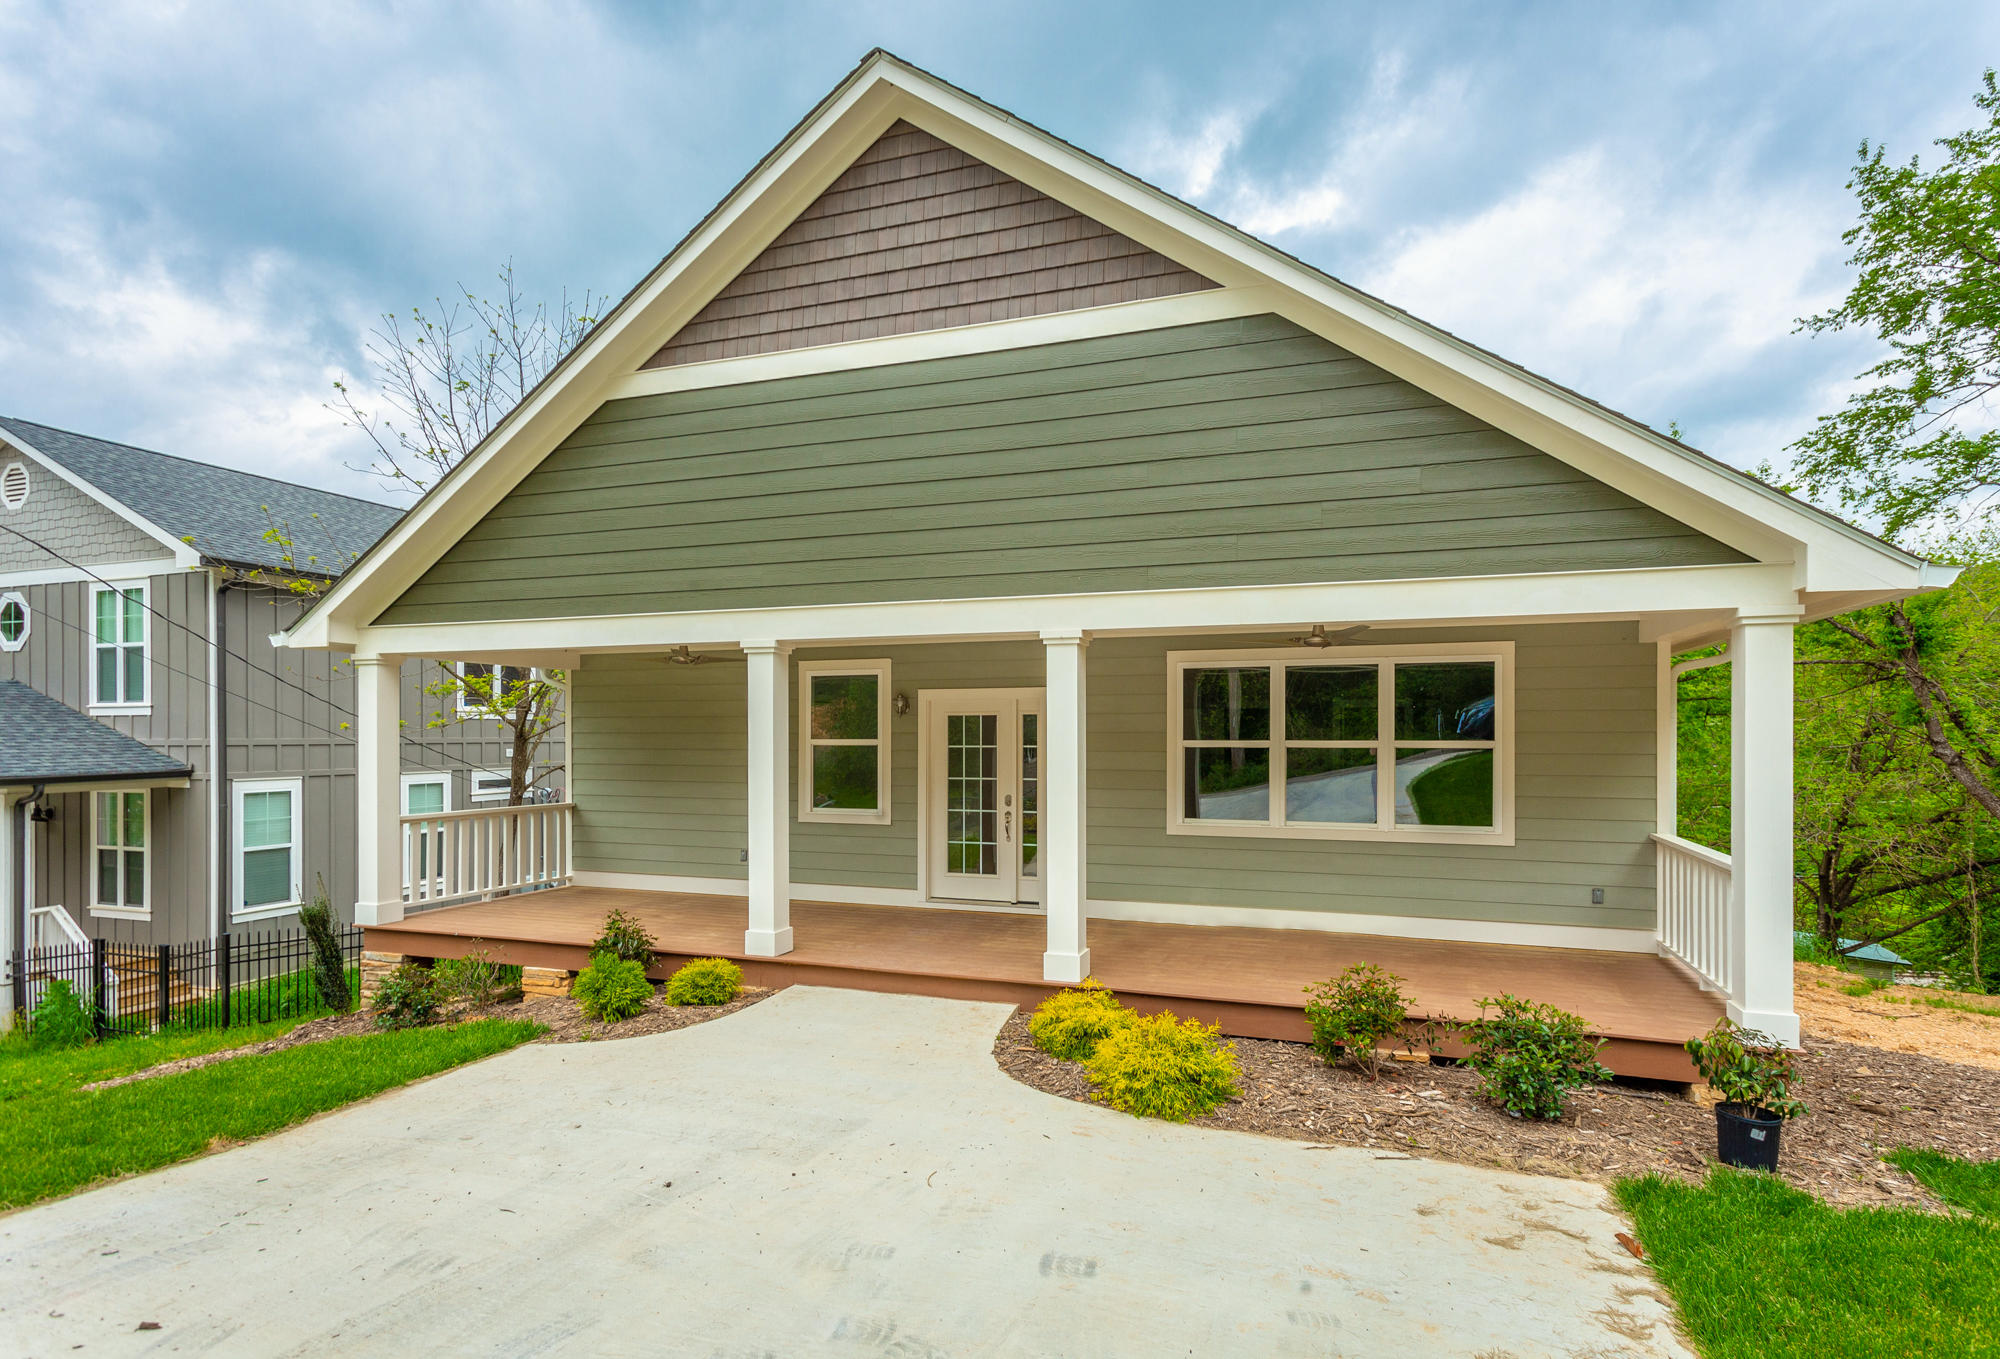 605 Ladd Ave, Chattanooga, TN 37405